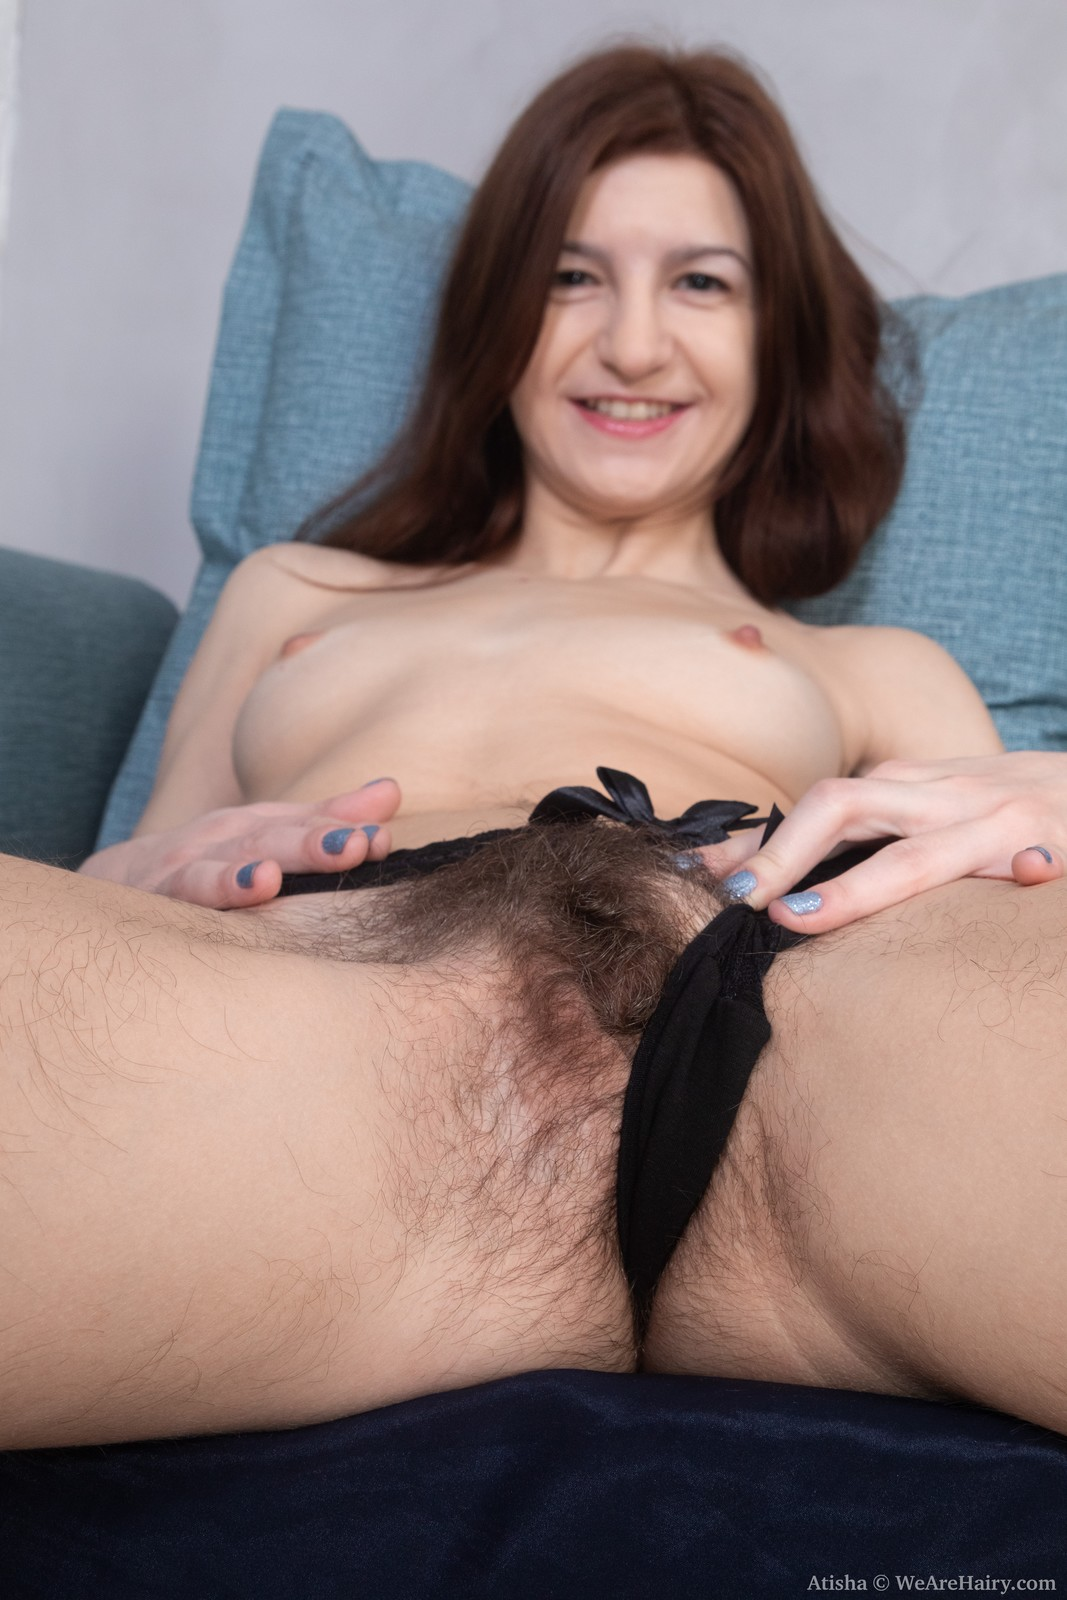 Squirting orgasm from machine